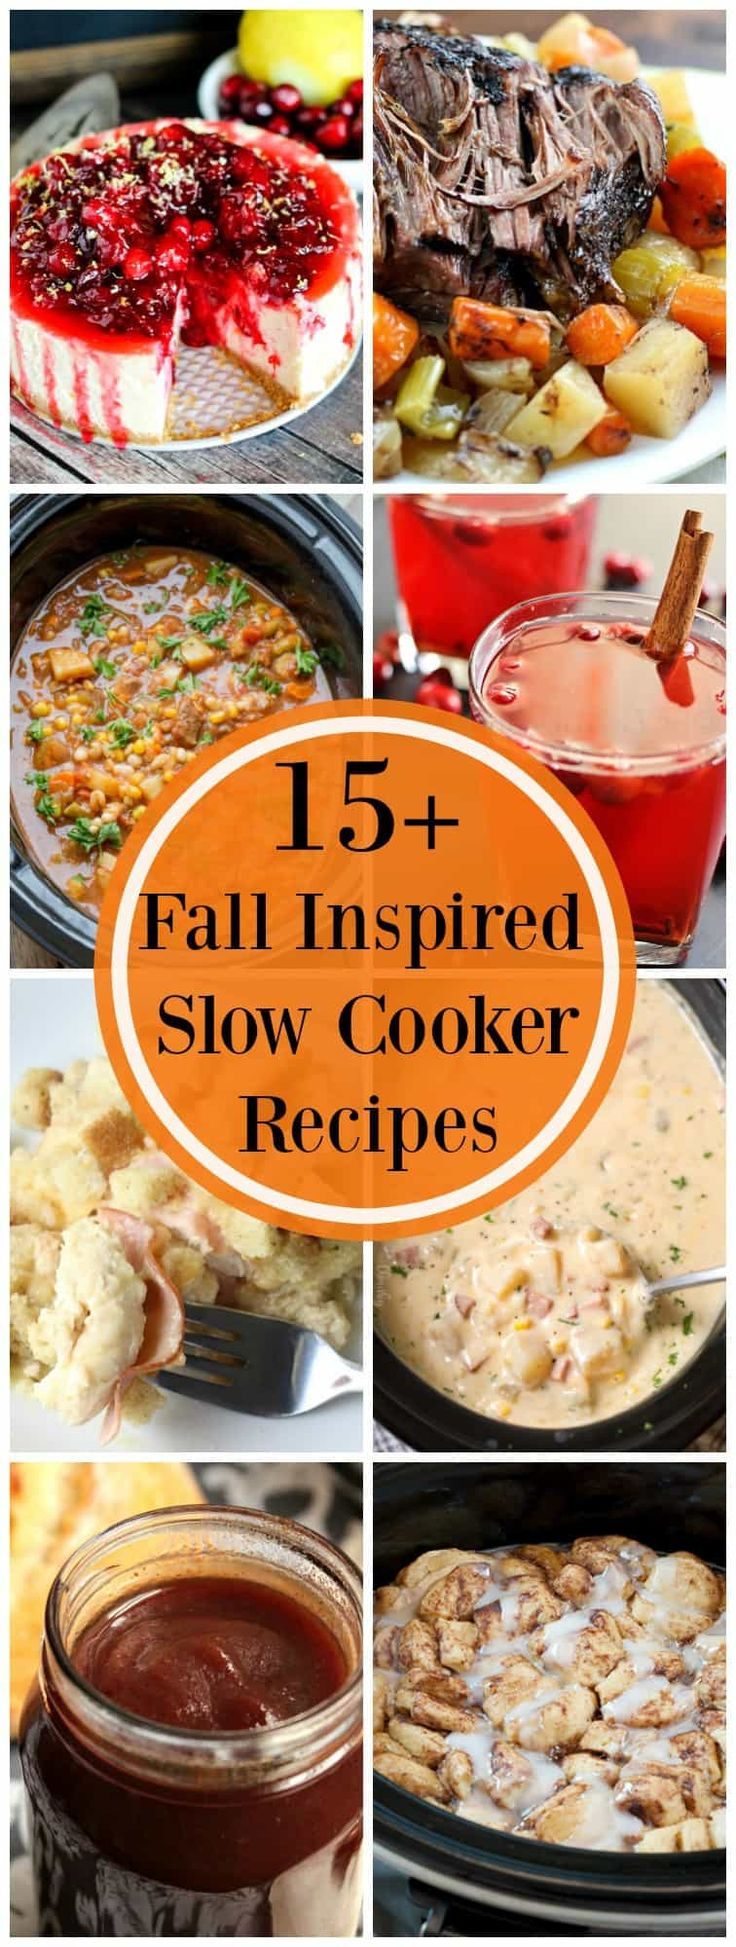 Best Fall Crockpot Recipes | Perfect #slowcooker recipes for those busy days! #crockpot #fall